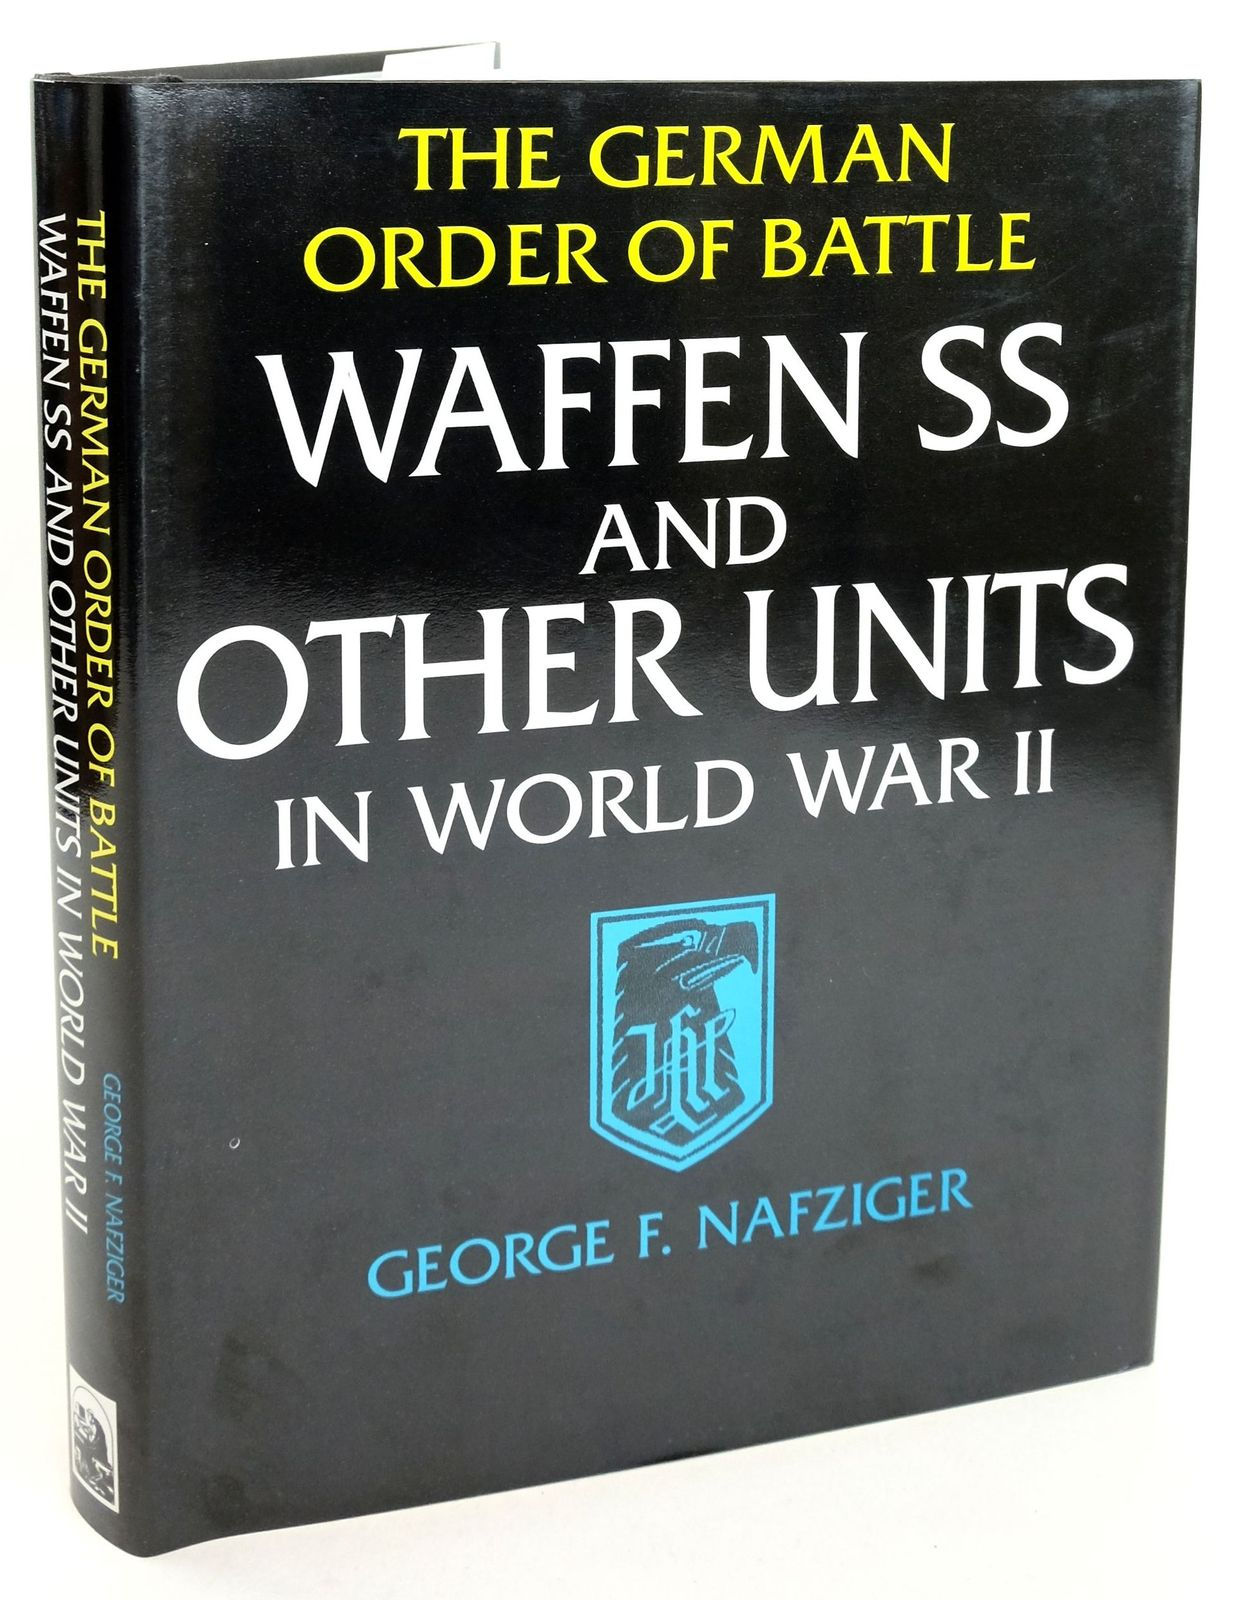 Photo of THE GERMAN ORDER OF BATTLE WAFFEN SS AND OTHER UNITS IN WORLD WAR II- Stock Number: 1819336